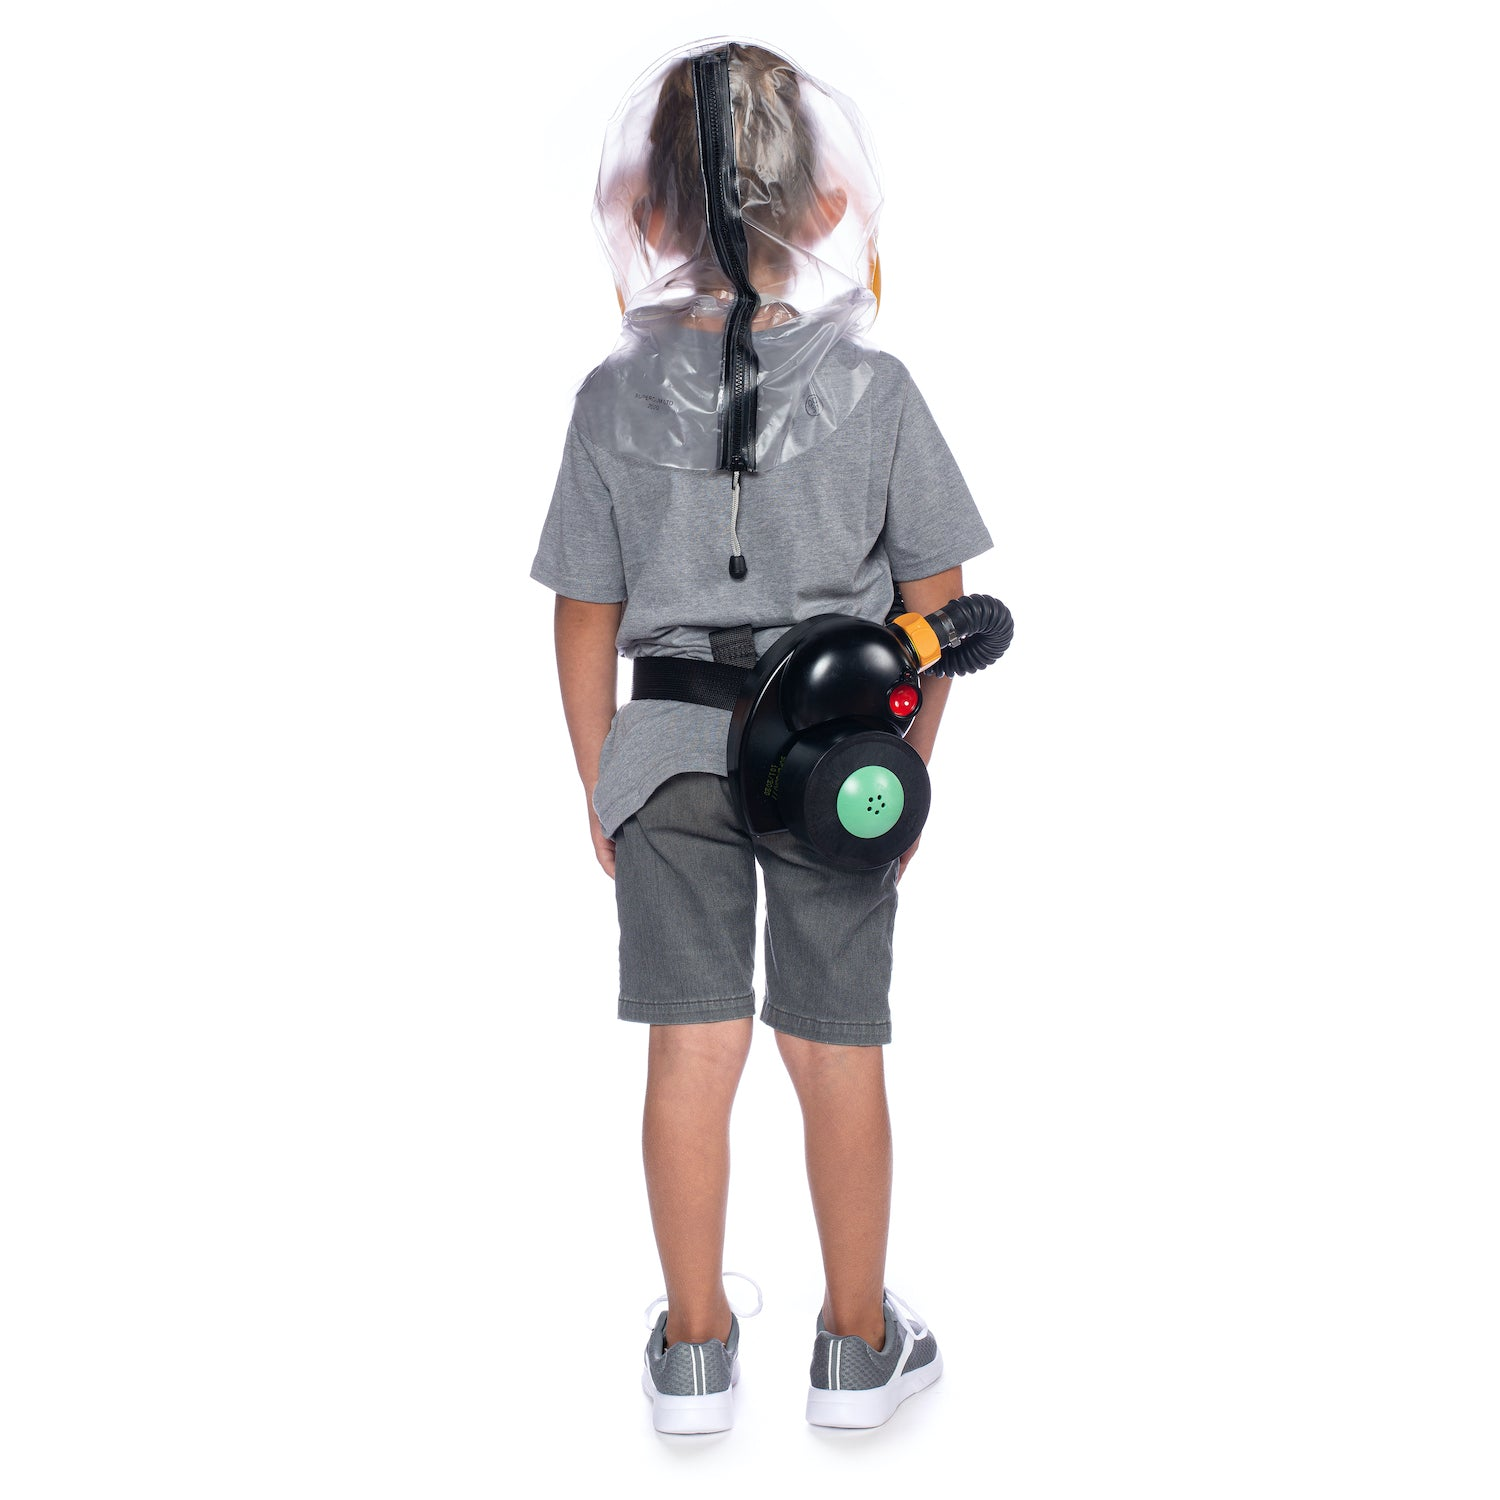 CM-3M Kid's Gas Mask with hip belt setup